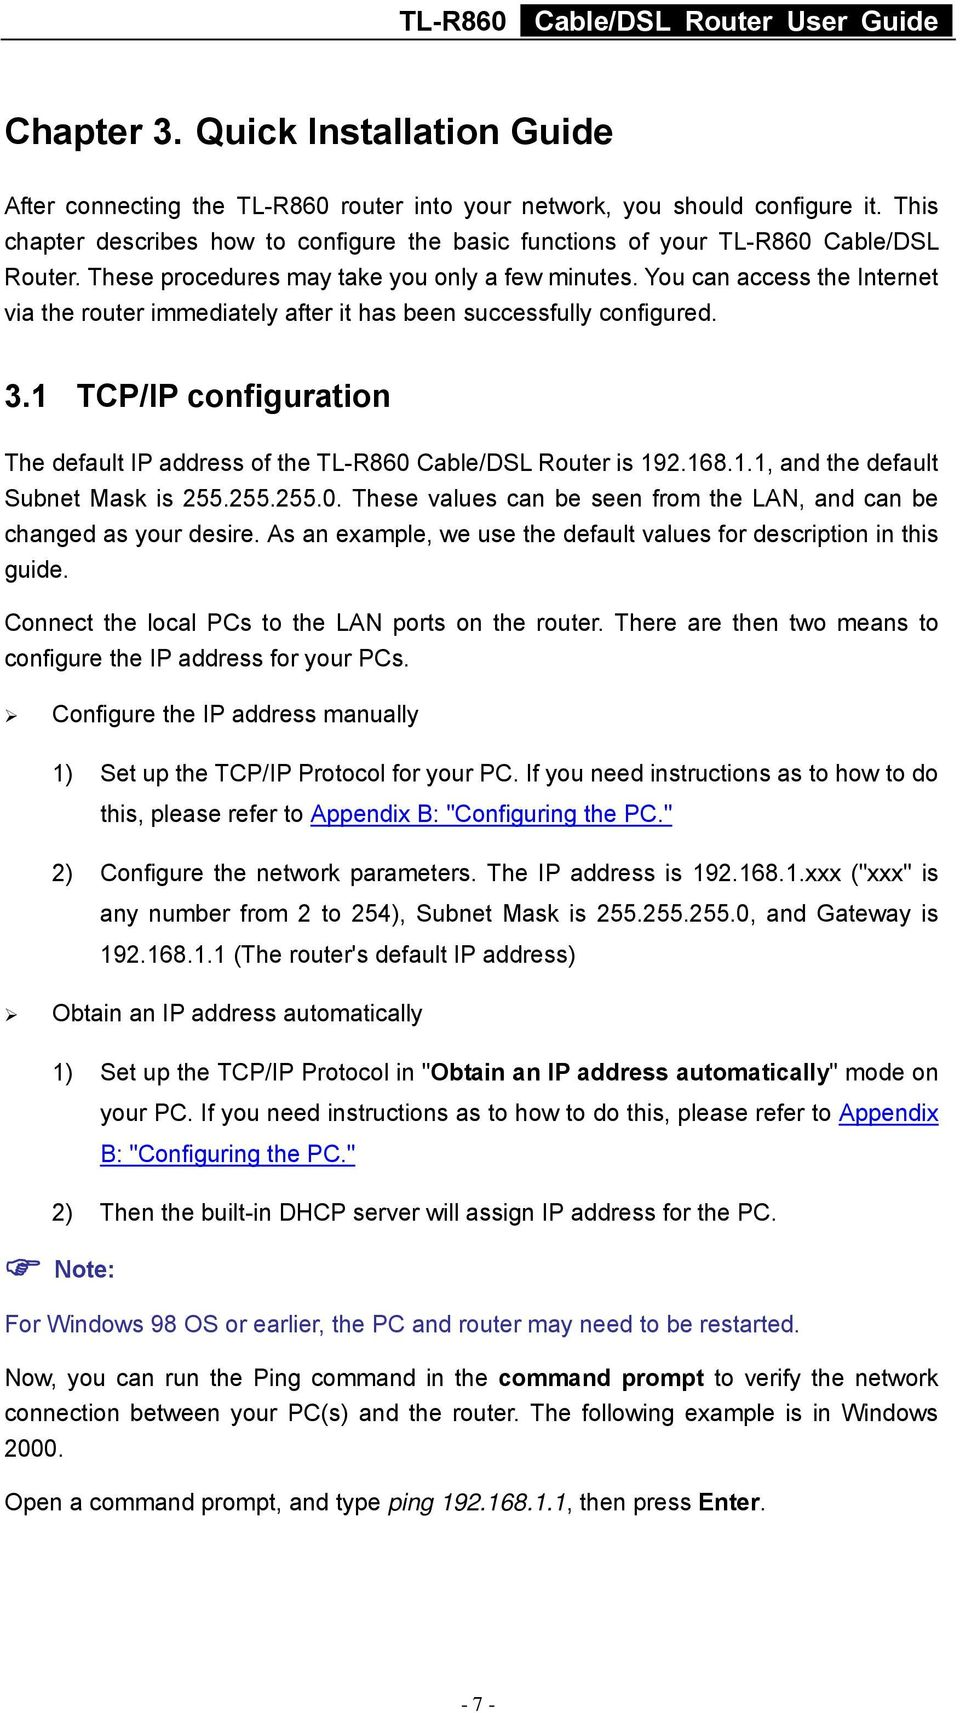 You can access the Internet via the router immediately after it has been successfully configured. 3.1 TCP/IP configuration The default IP address of the TL-R860 Cable/DSL Router is 192.168.1.1, and the default Subnet Mask is 255.